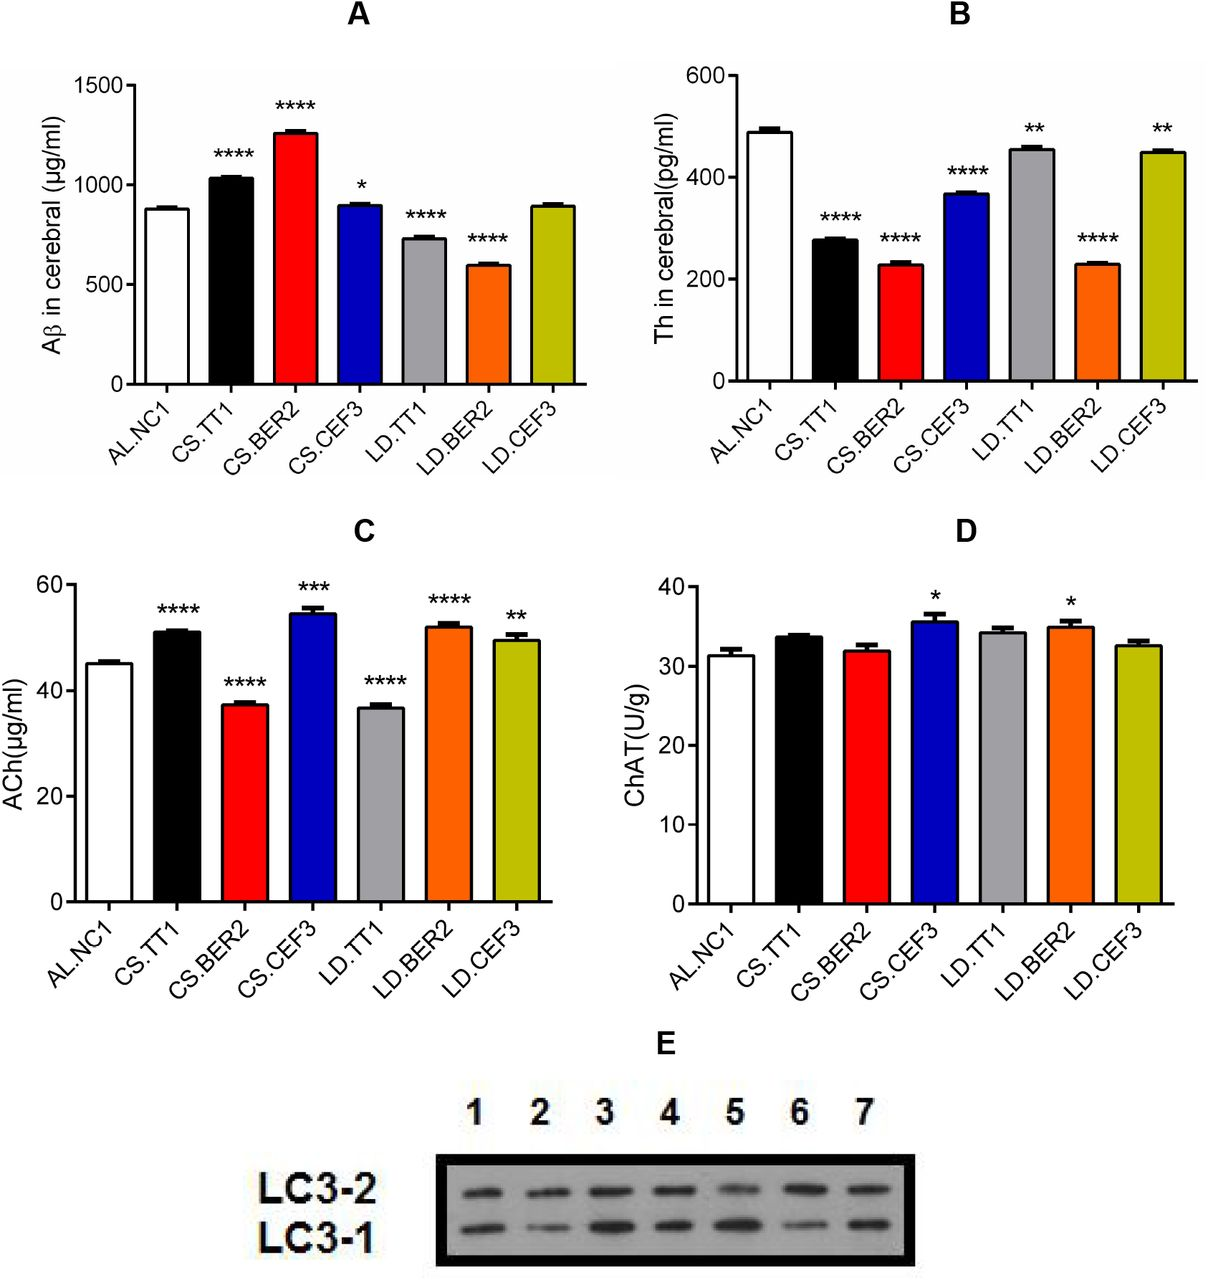 Chondroitin Sulfate Elicits Systemic Pathogenesis In Mice By